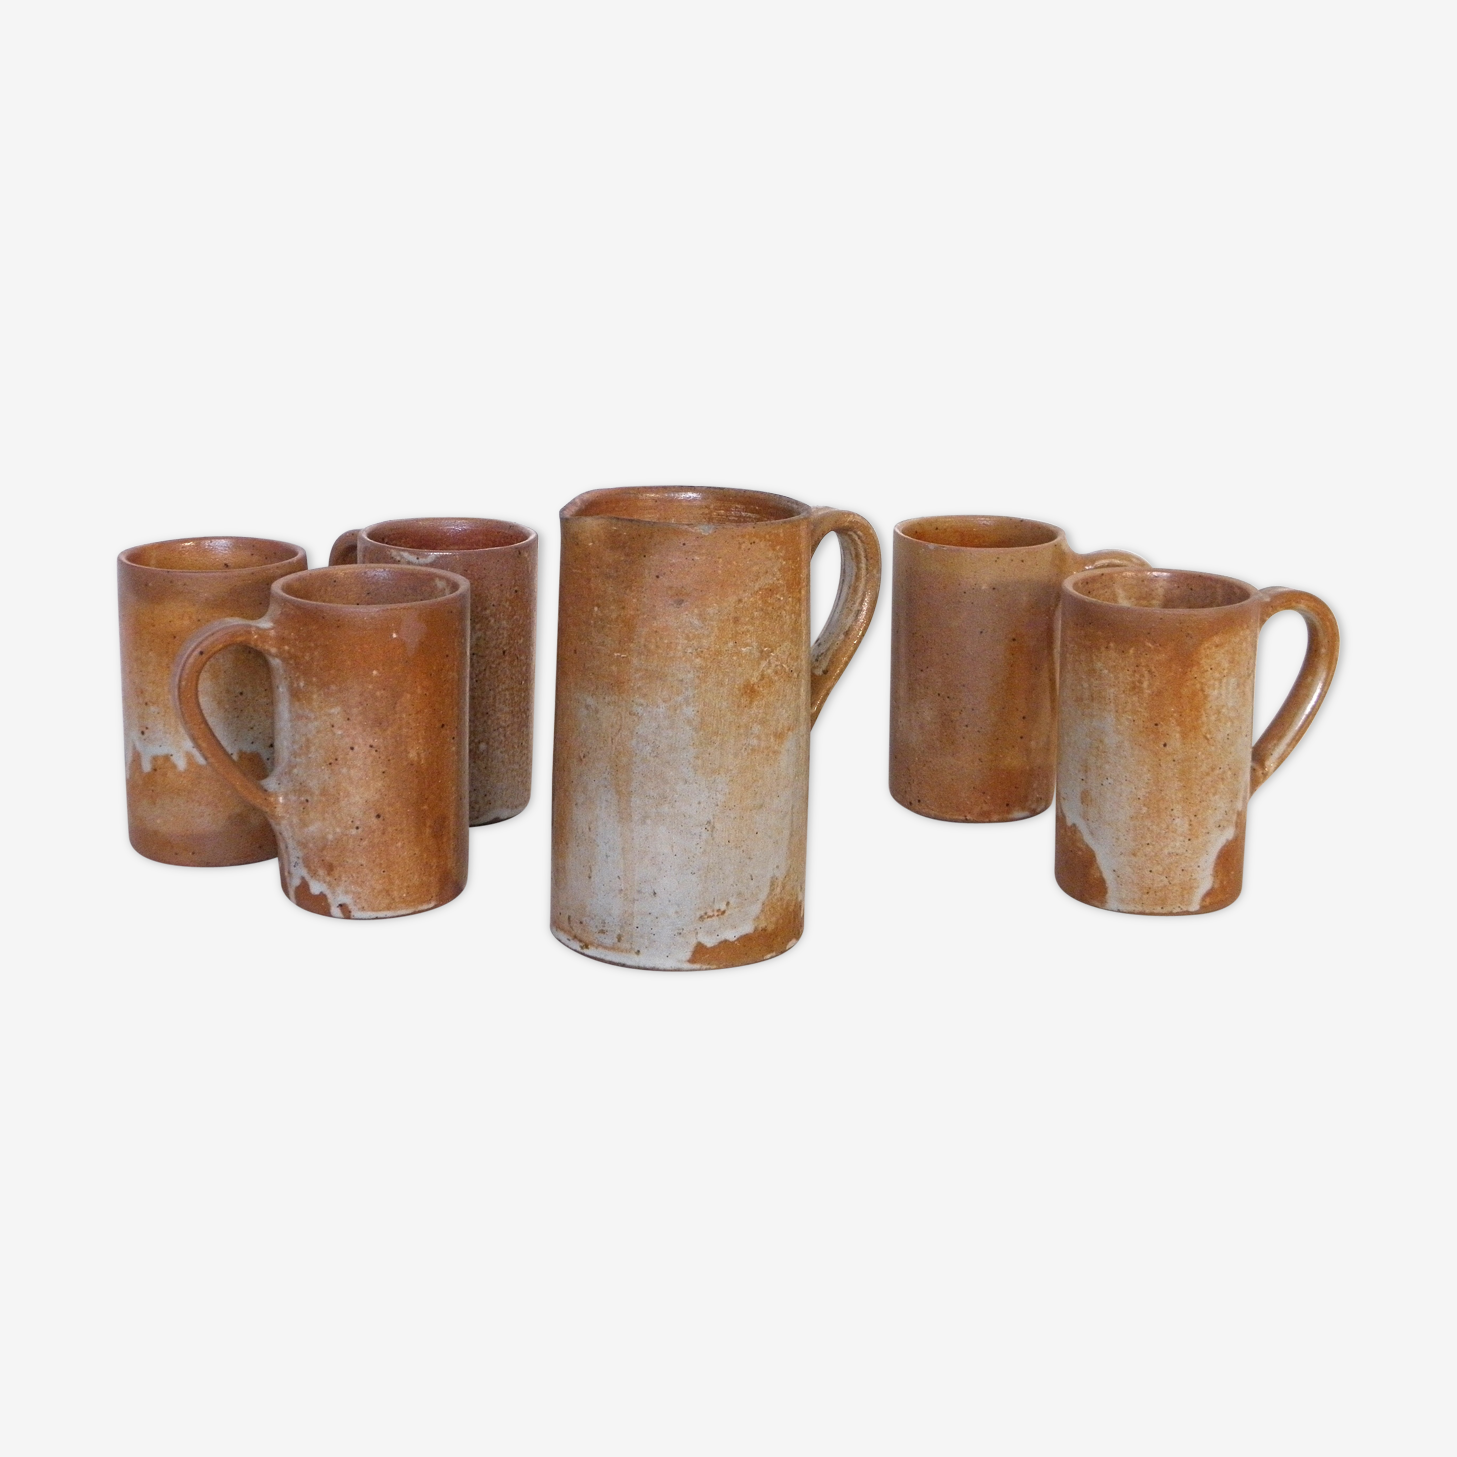 Decanter and enamelled stoneware mugs